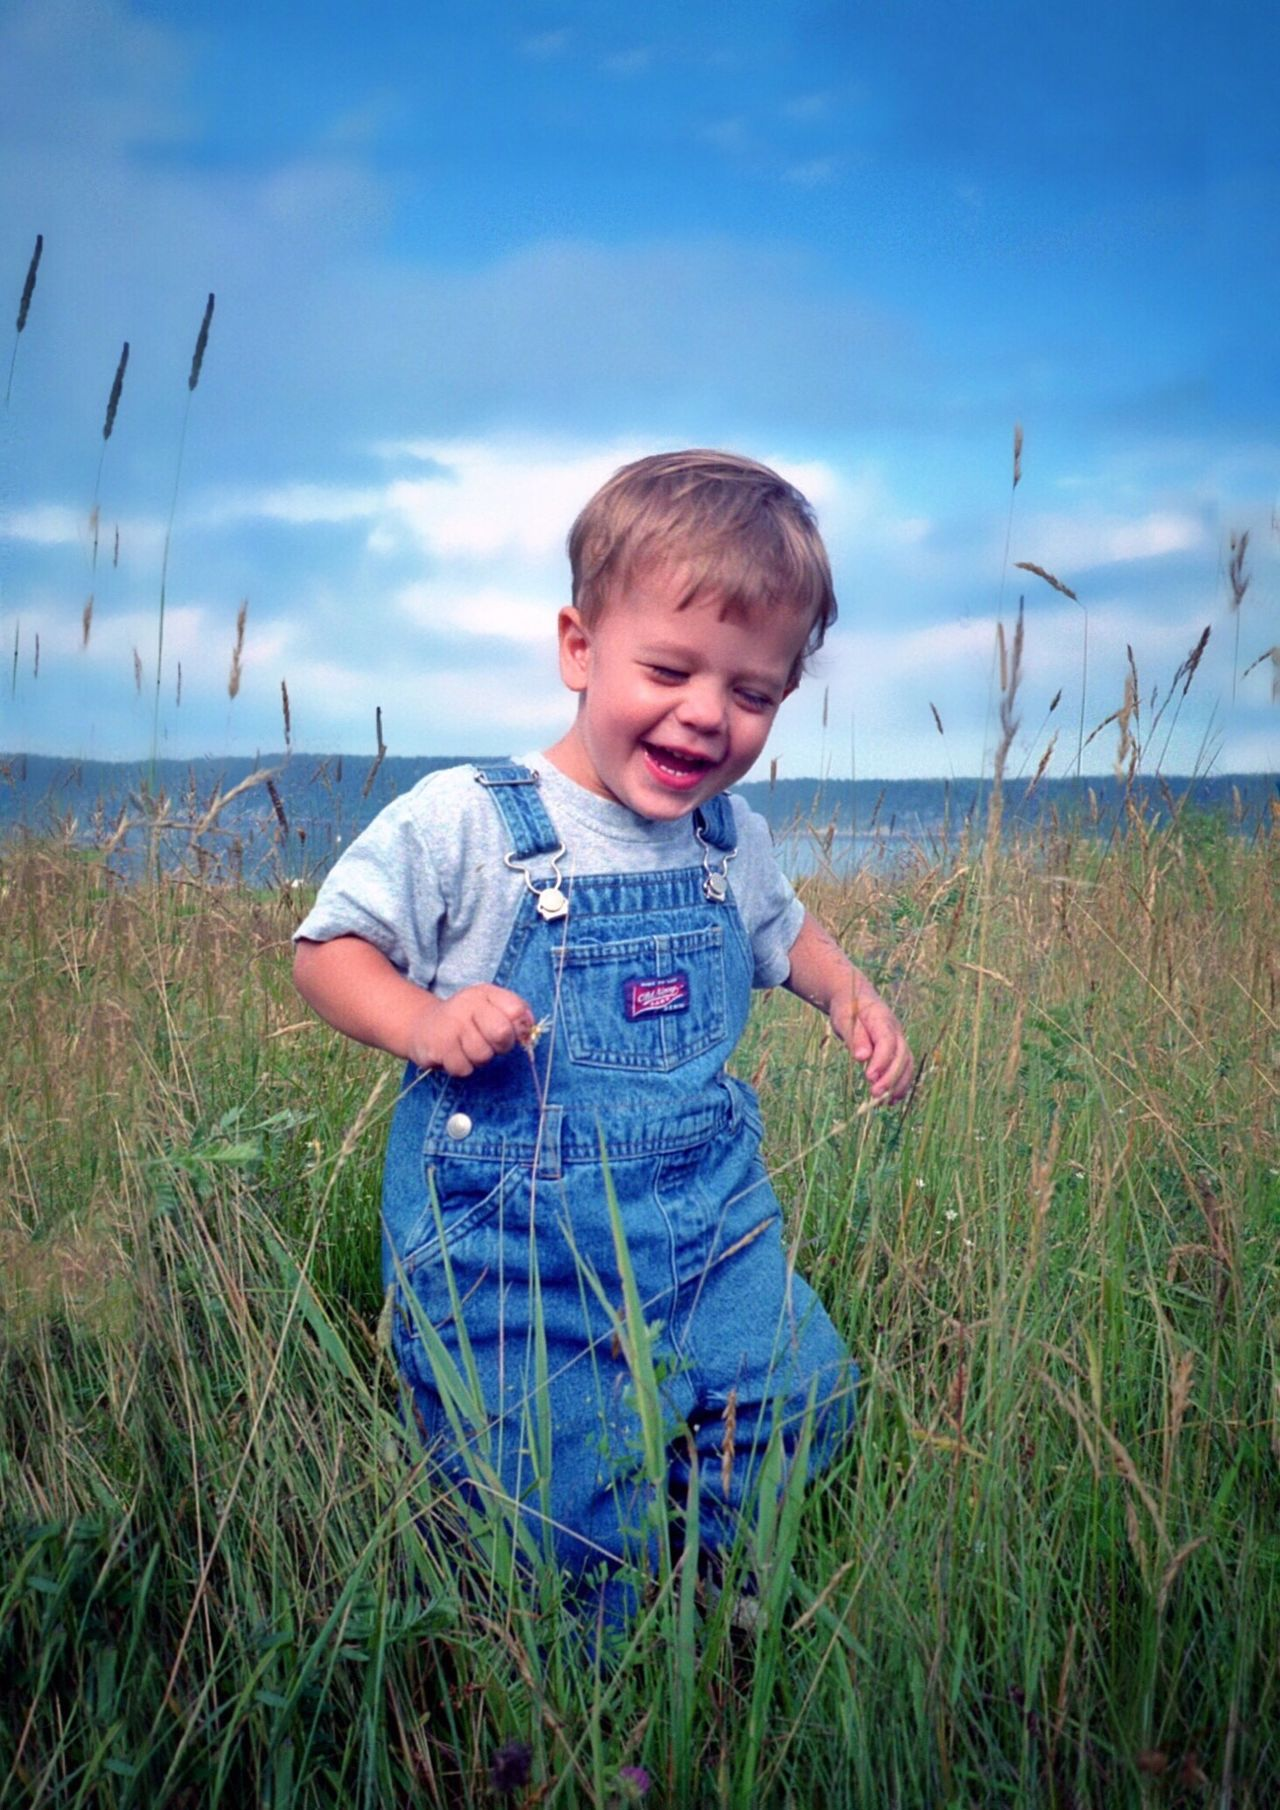 Happy Spring! Sunshine Blue Sky Happy Boy Boy In Field Boy In Overalls Childhood Green Green Grass Blue Smile Happy Child  Play Playing The Essence Of Summer The Portraitist - 2016 EyeEm Awards Maine Live For The Story